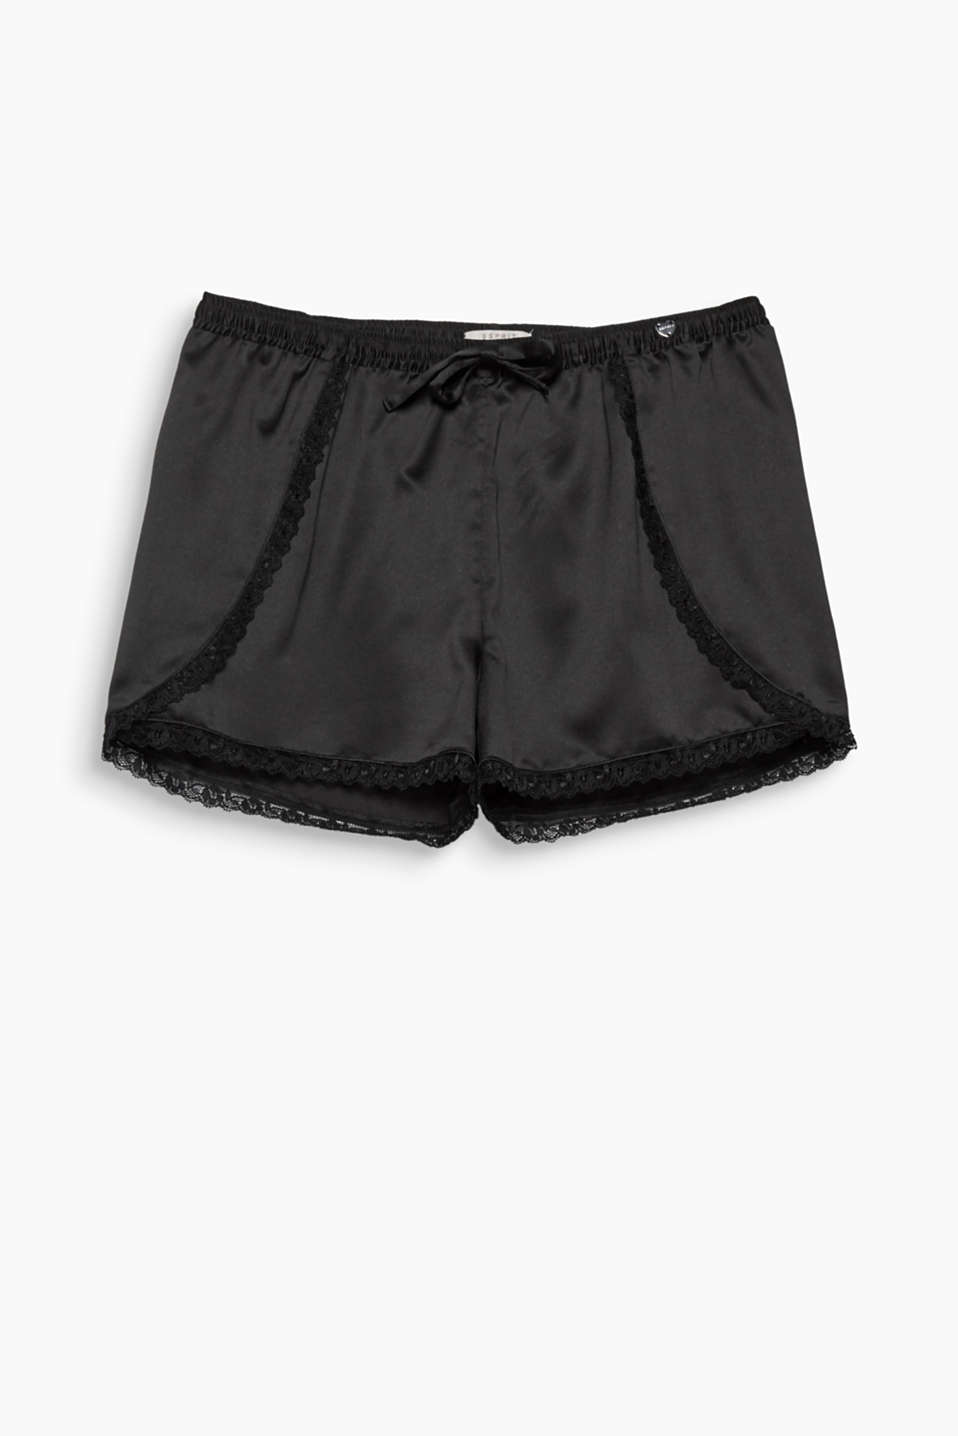 The styling of these shorts finished with appliquéd lace trims and a comfy, elasticated waistband is silky and sexy!